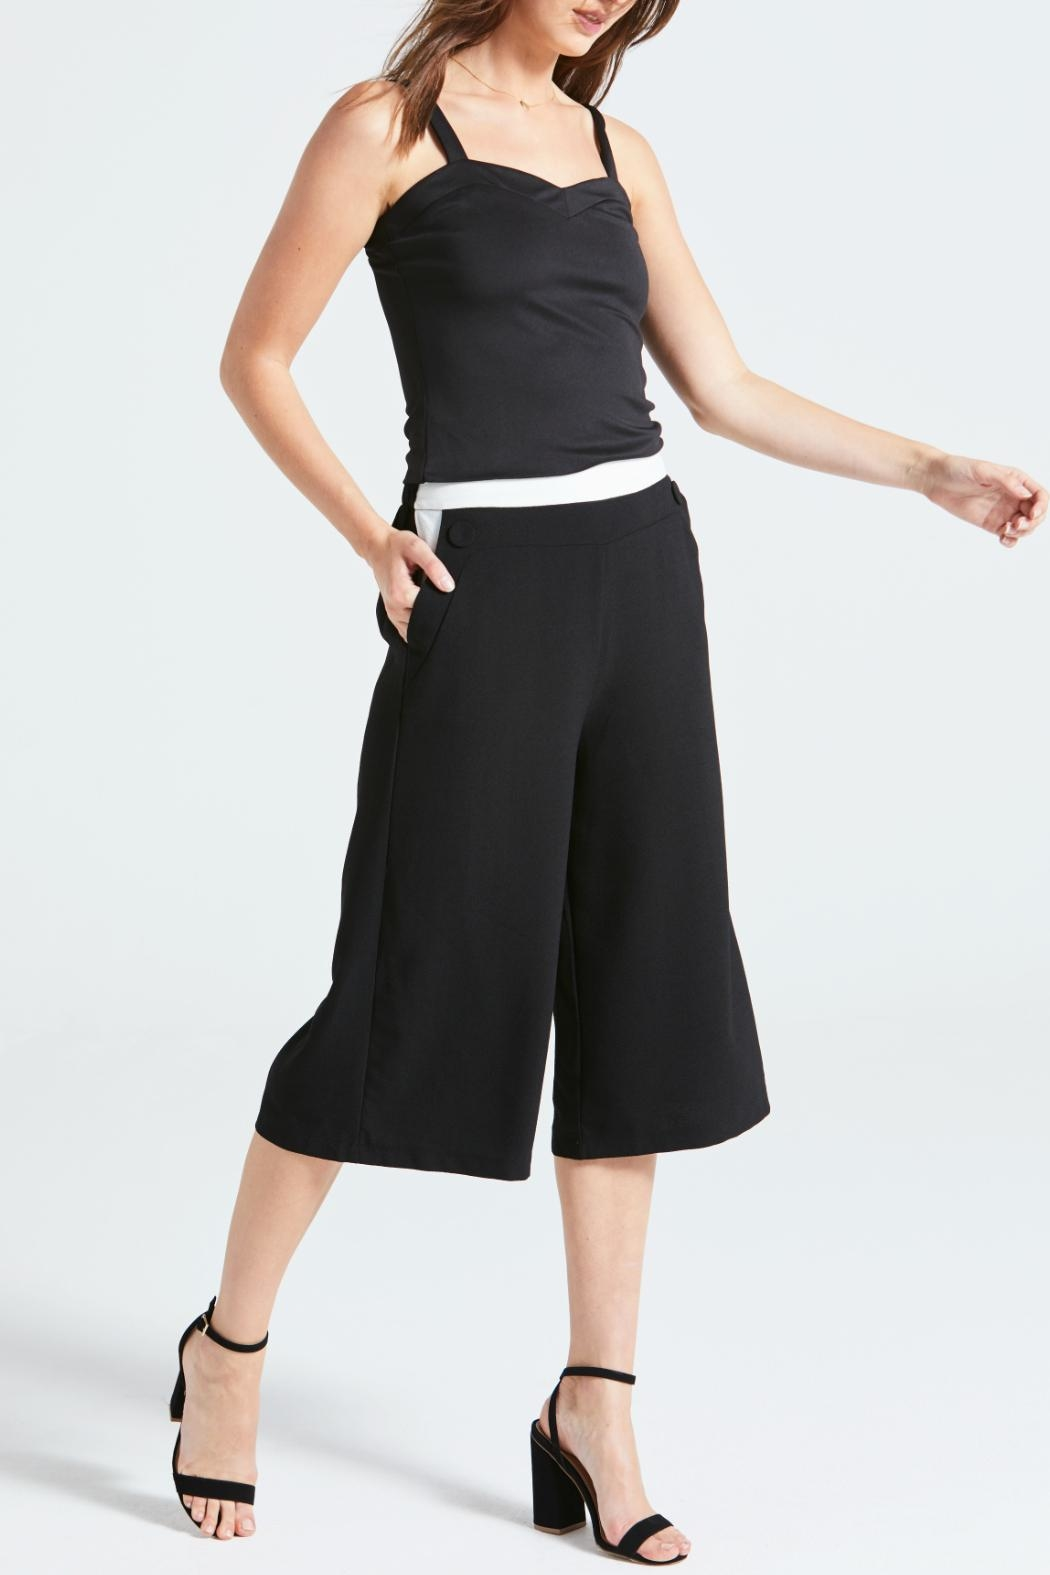 Angeleye London Renis Culottes - Main Image